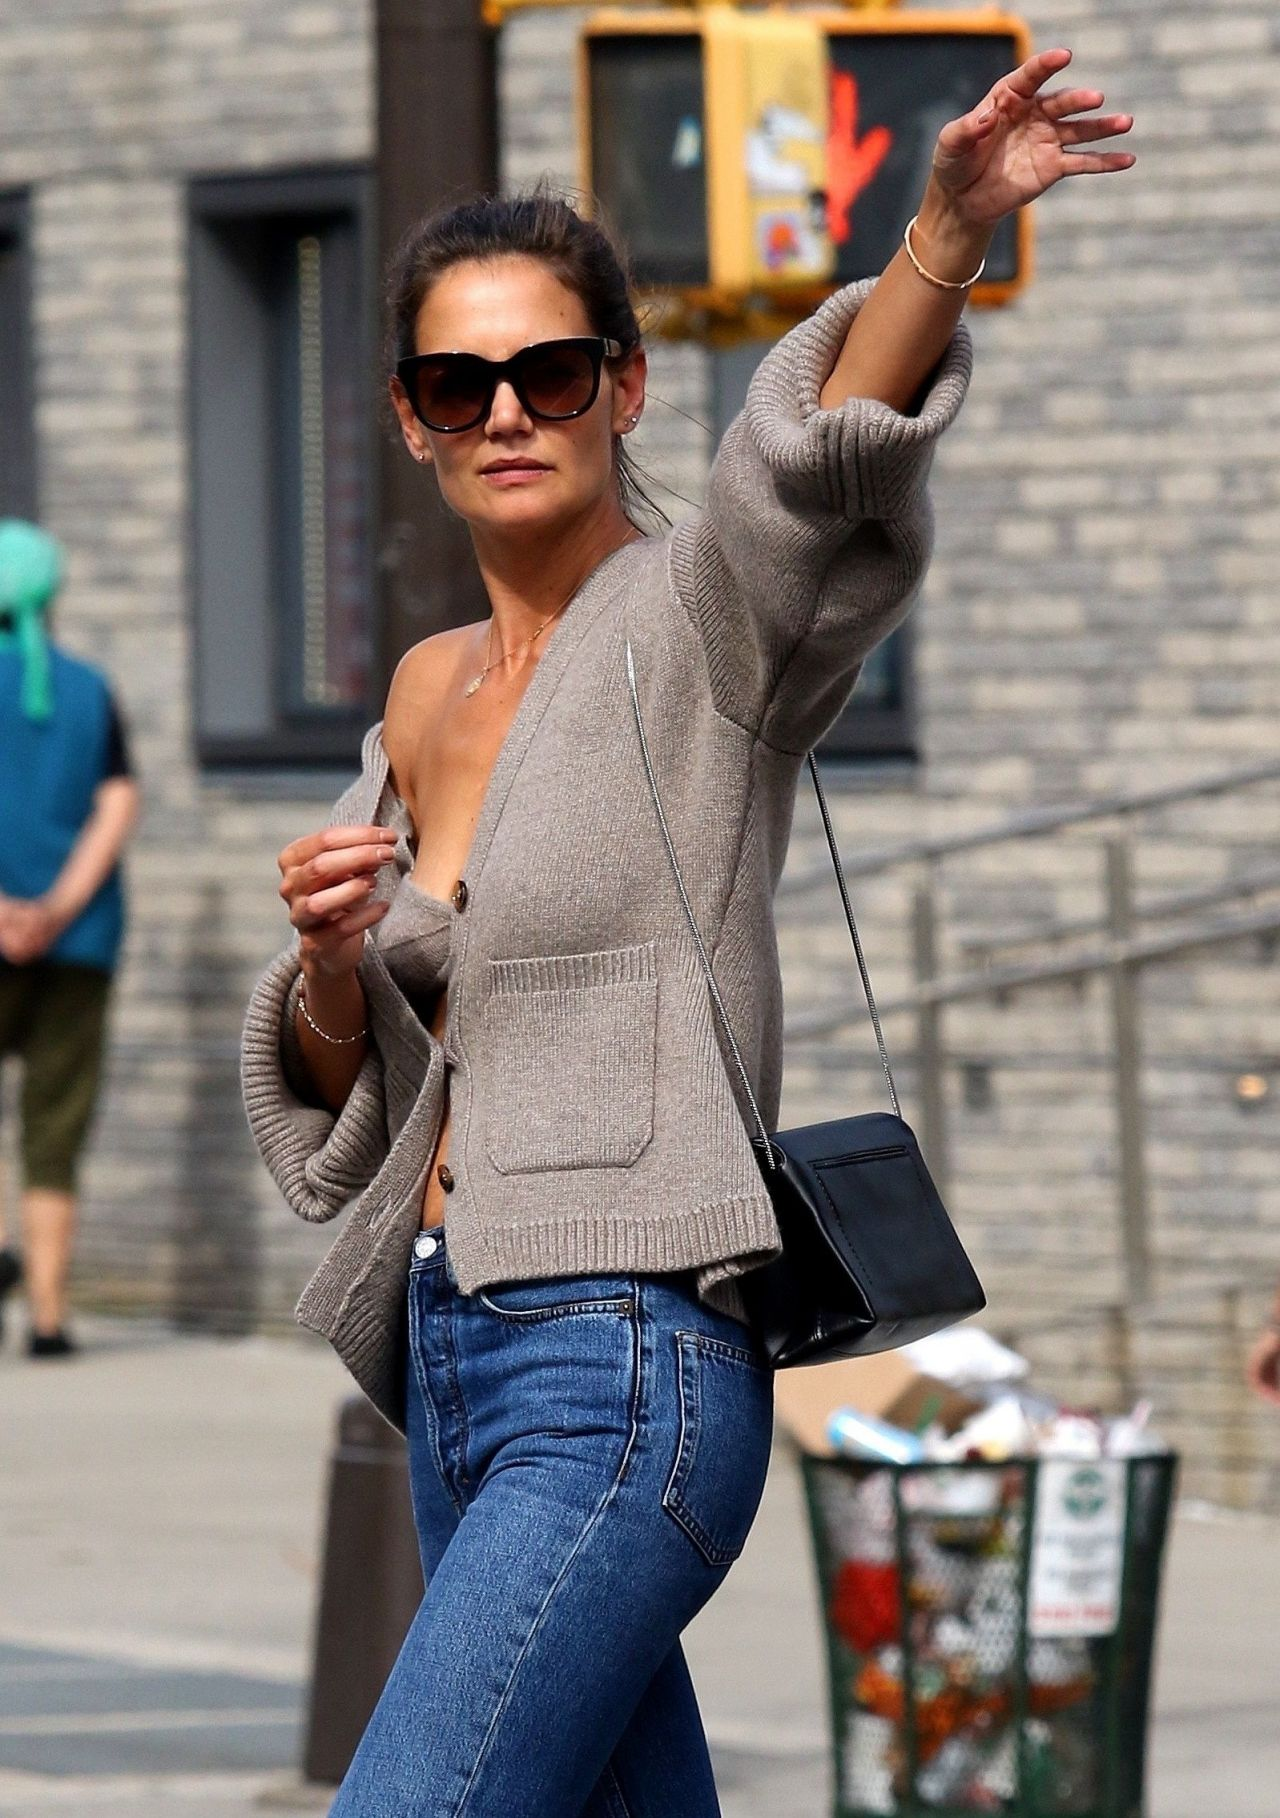 Katie Holmes Catching A Cab In Nyc 08 27 2019